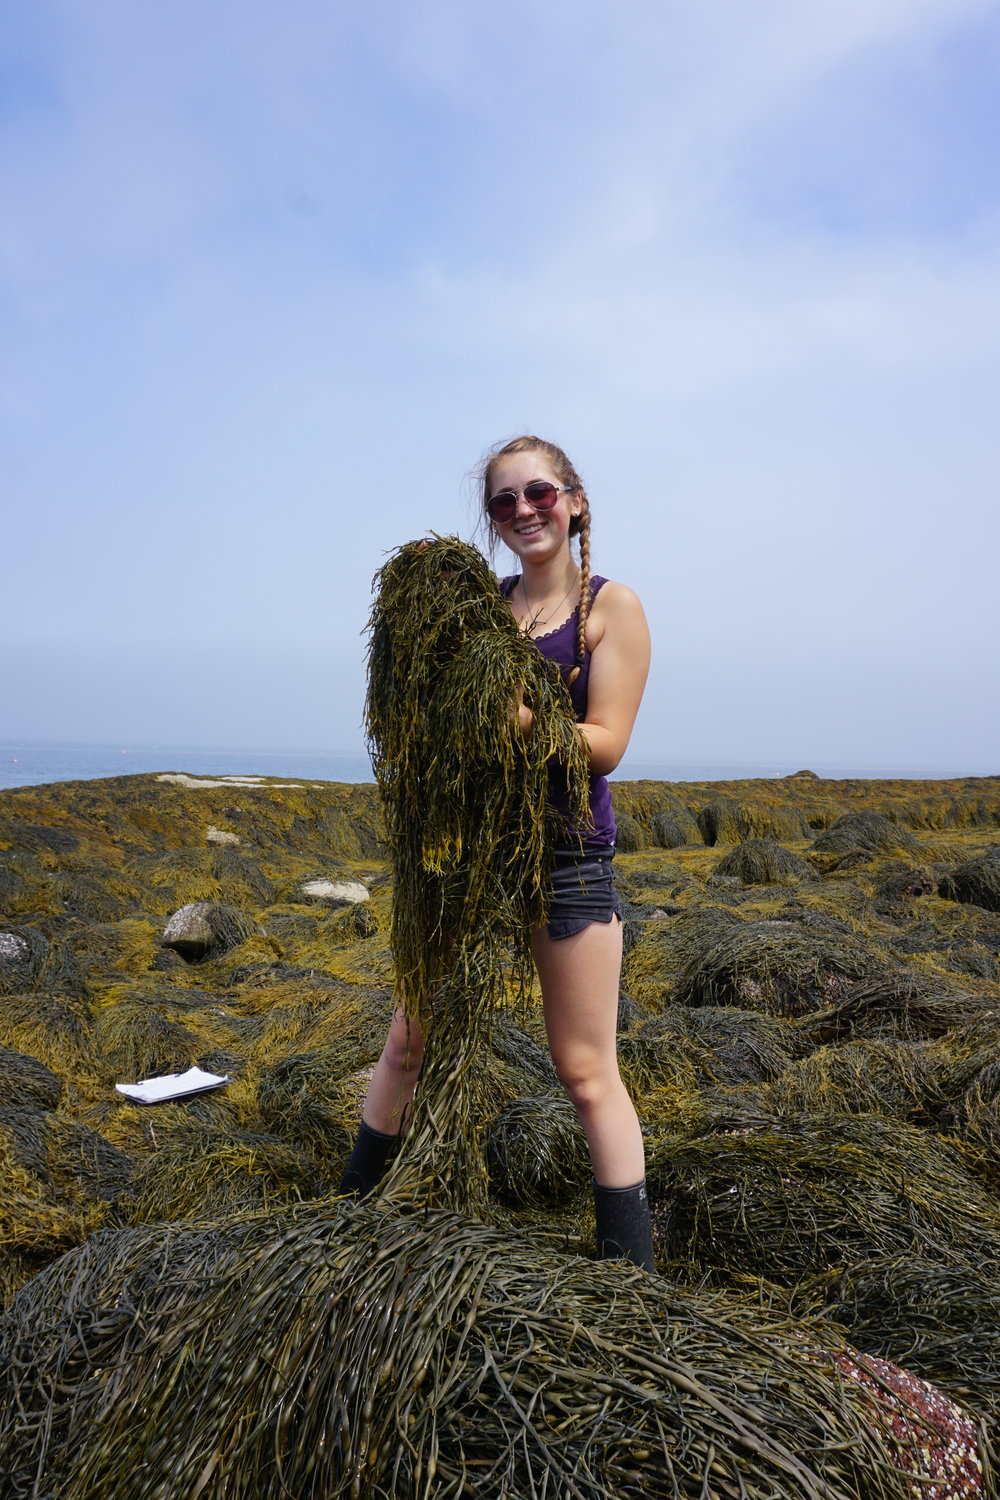 - Happy to see so much rockweed!